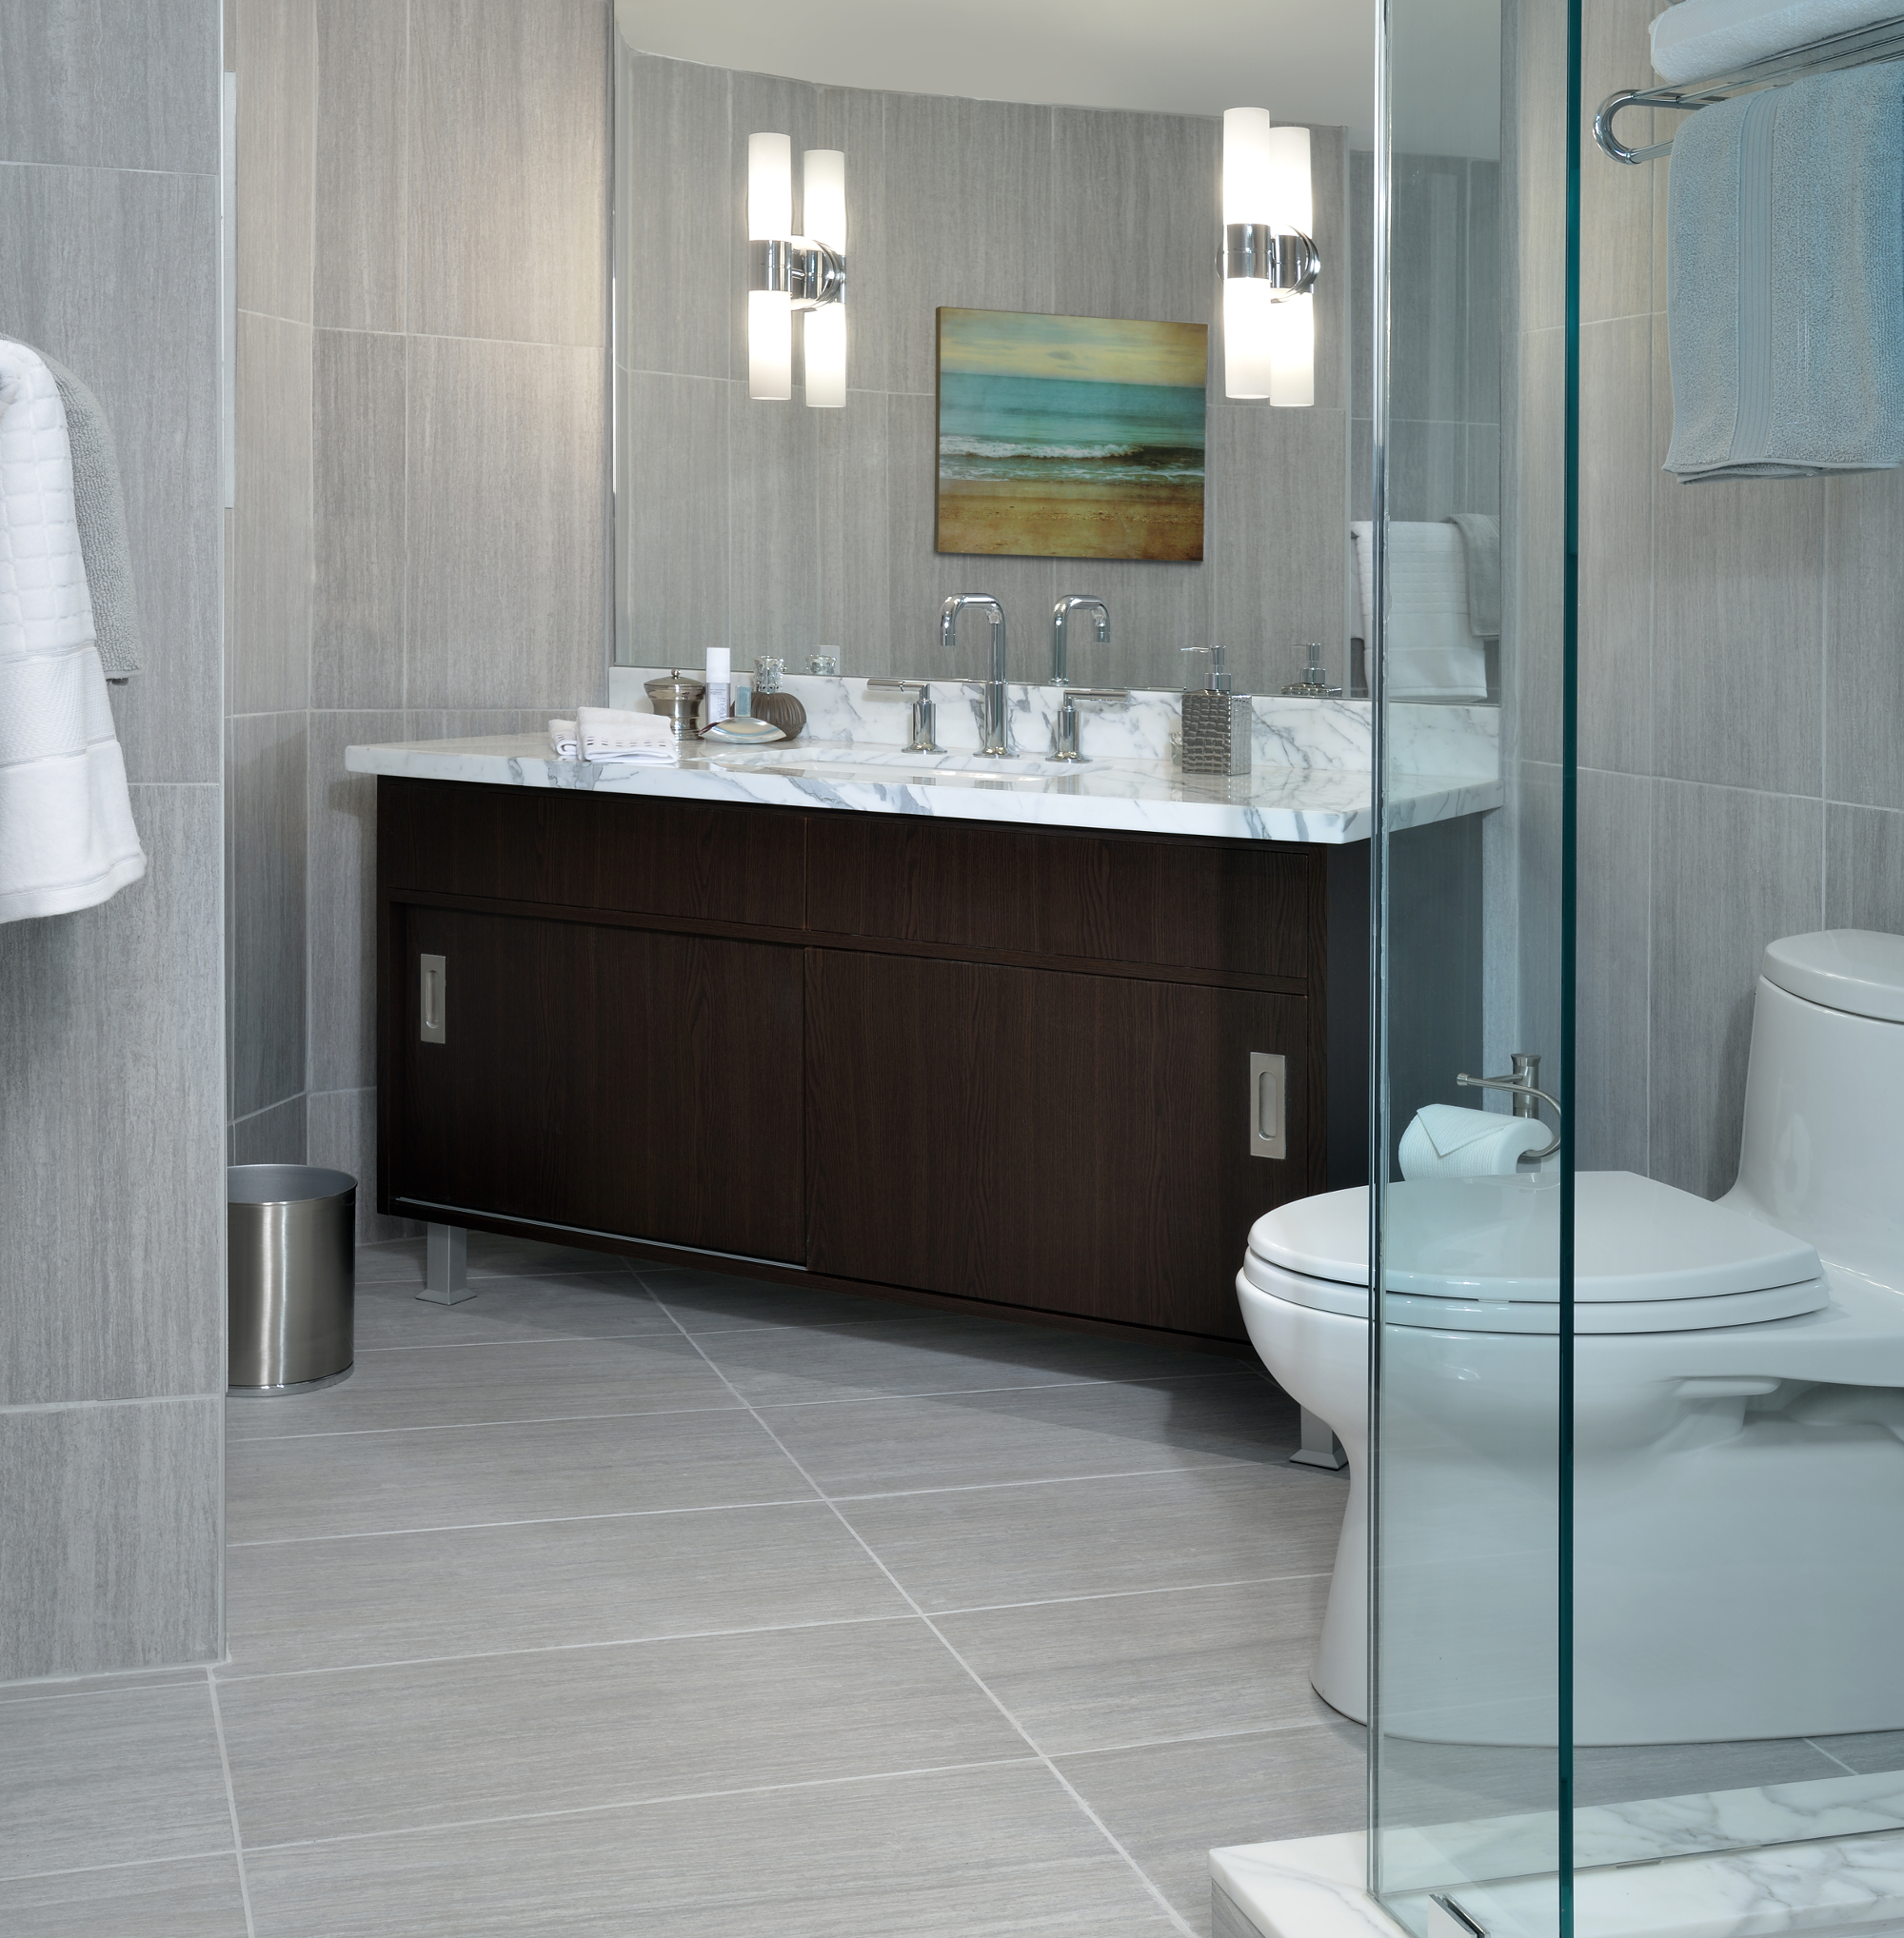 Bathroom Renovation Budget Breakdown Home Trends Magazine